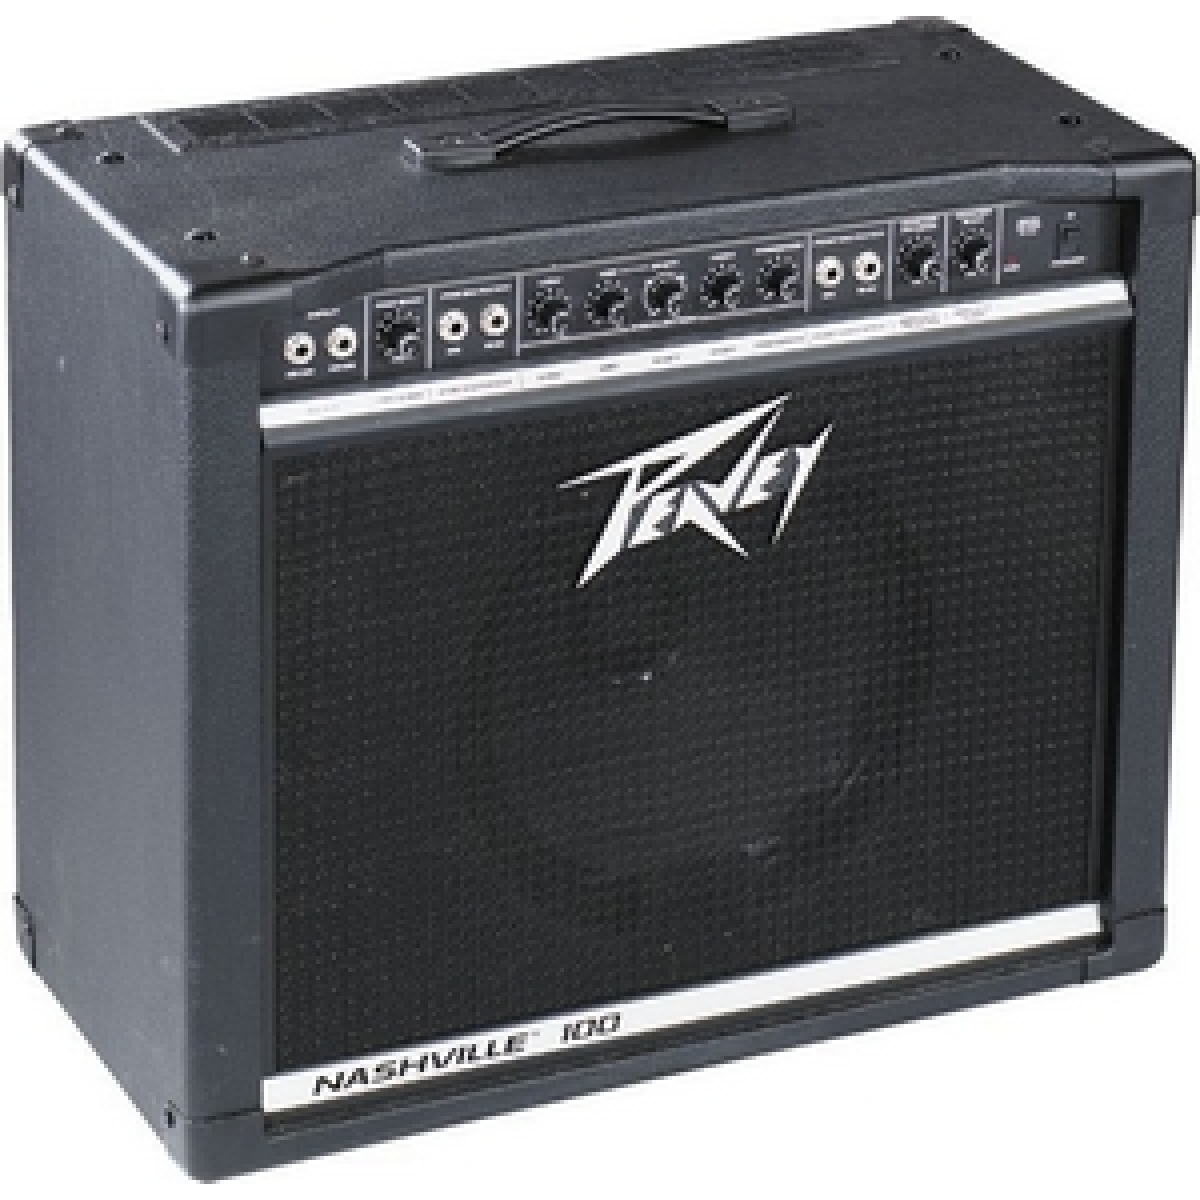 peavey nashville 112 pedal steel guitar combo amp 80w 1x12 at promenade music. Black Bedroom Furniture Sets. Home Design Ideas